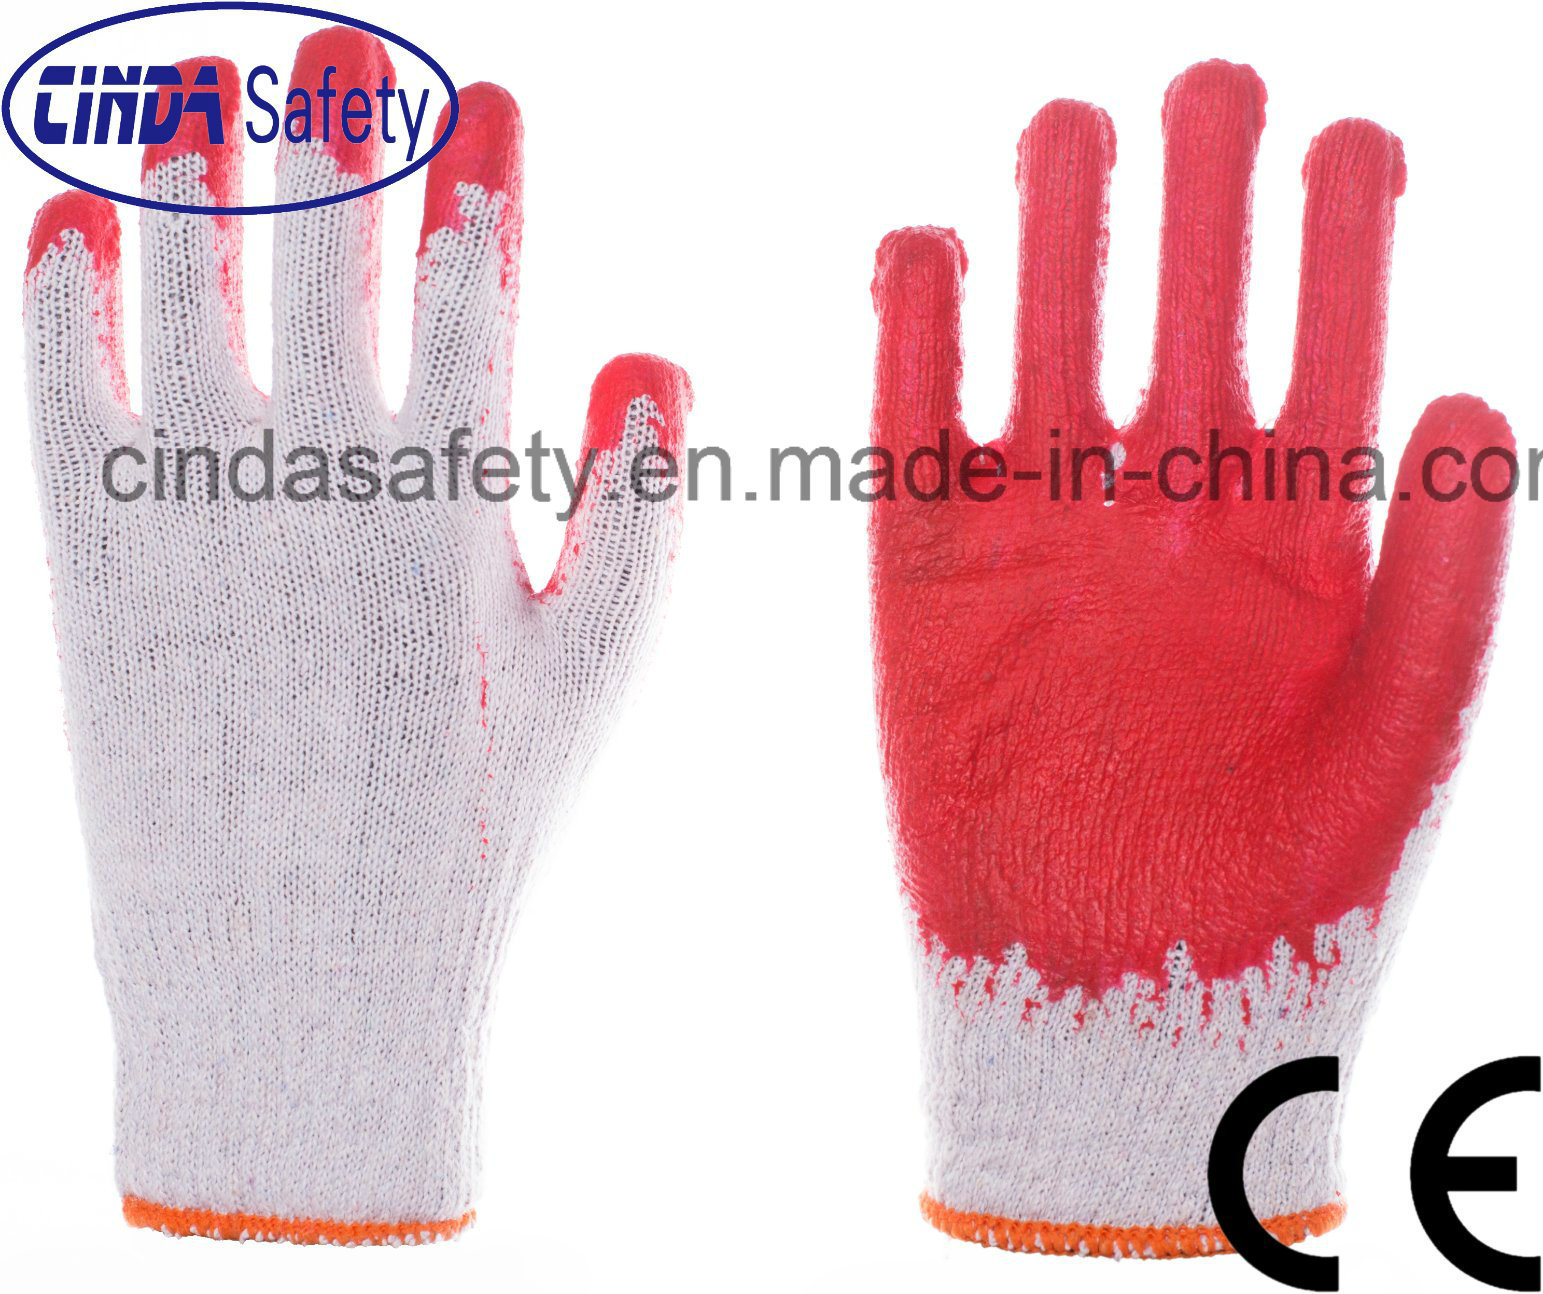 Labor Safety China Red Latex Coated Construction Industrial Labor Safety Work